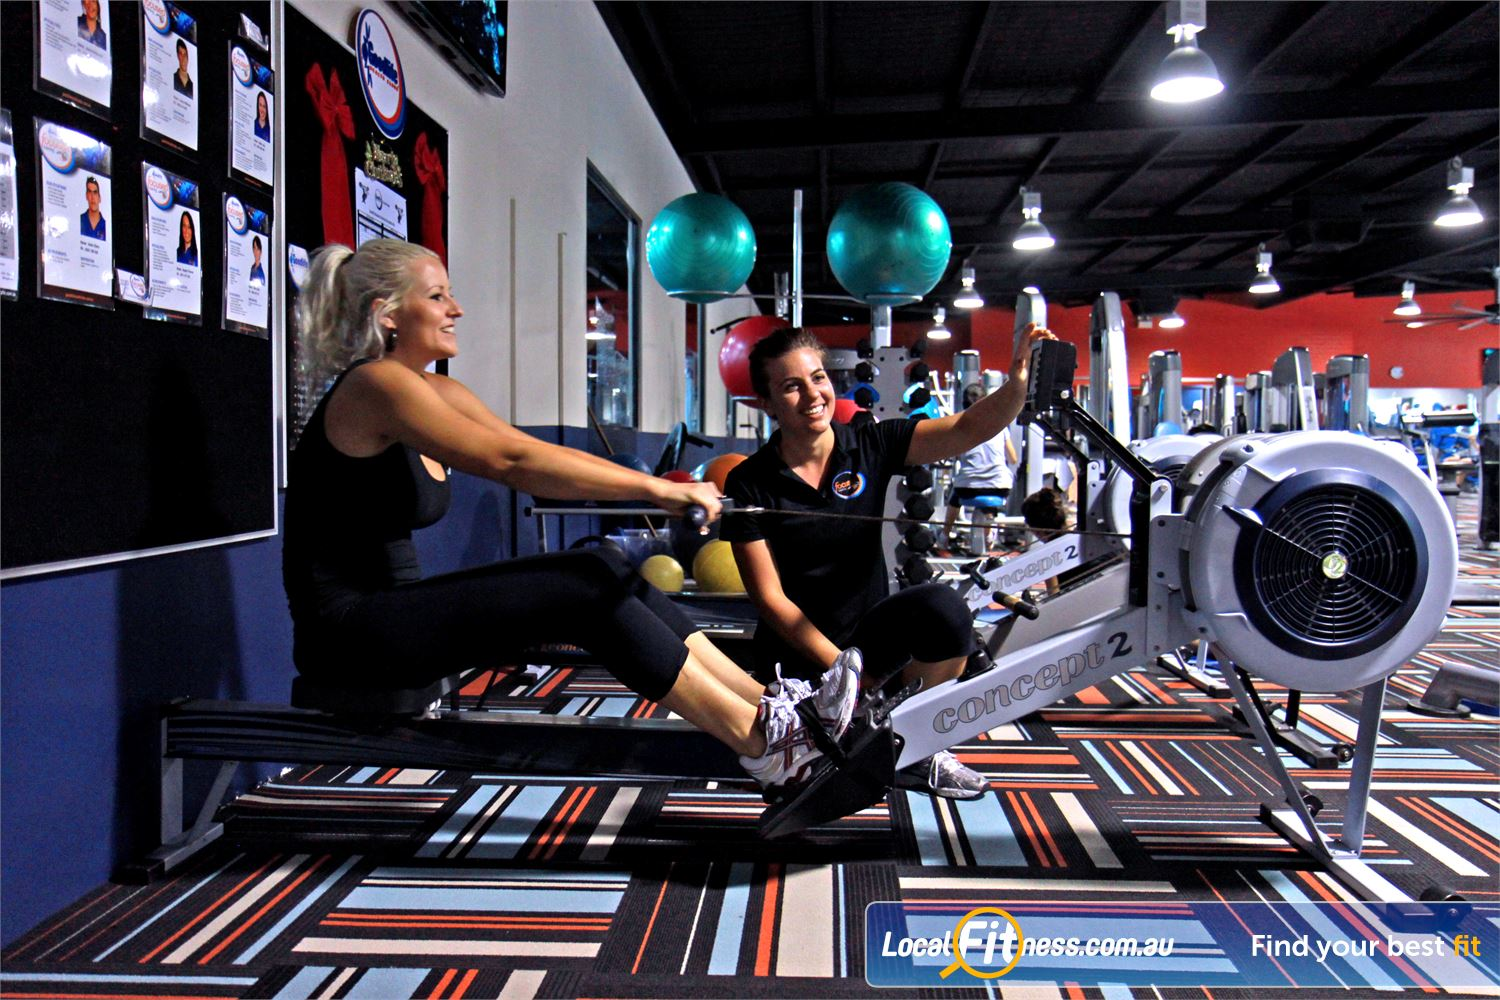 Goodlife Health Clubs Kingsway Near Wangara Madeley gym instructors can vary your workout with indoor rowing.